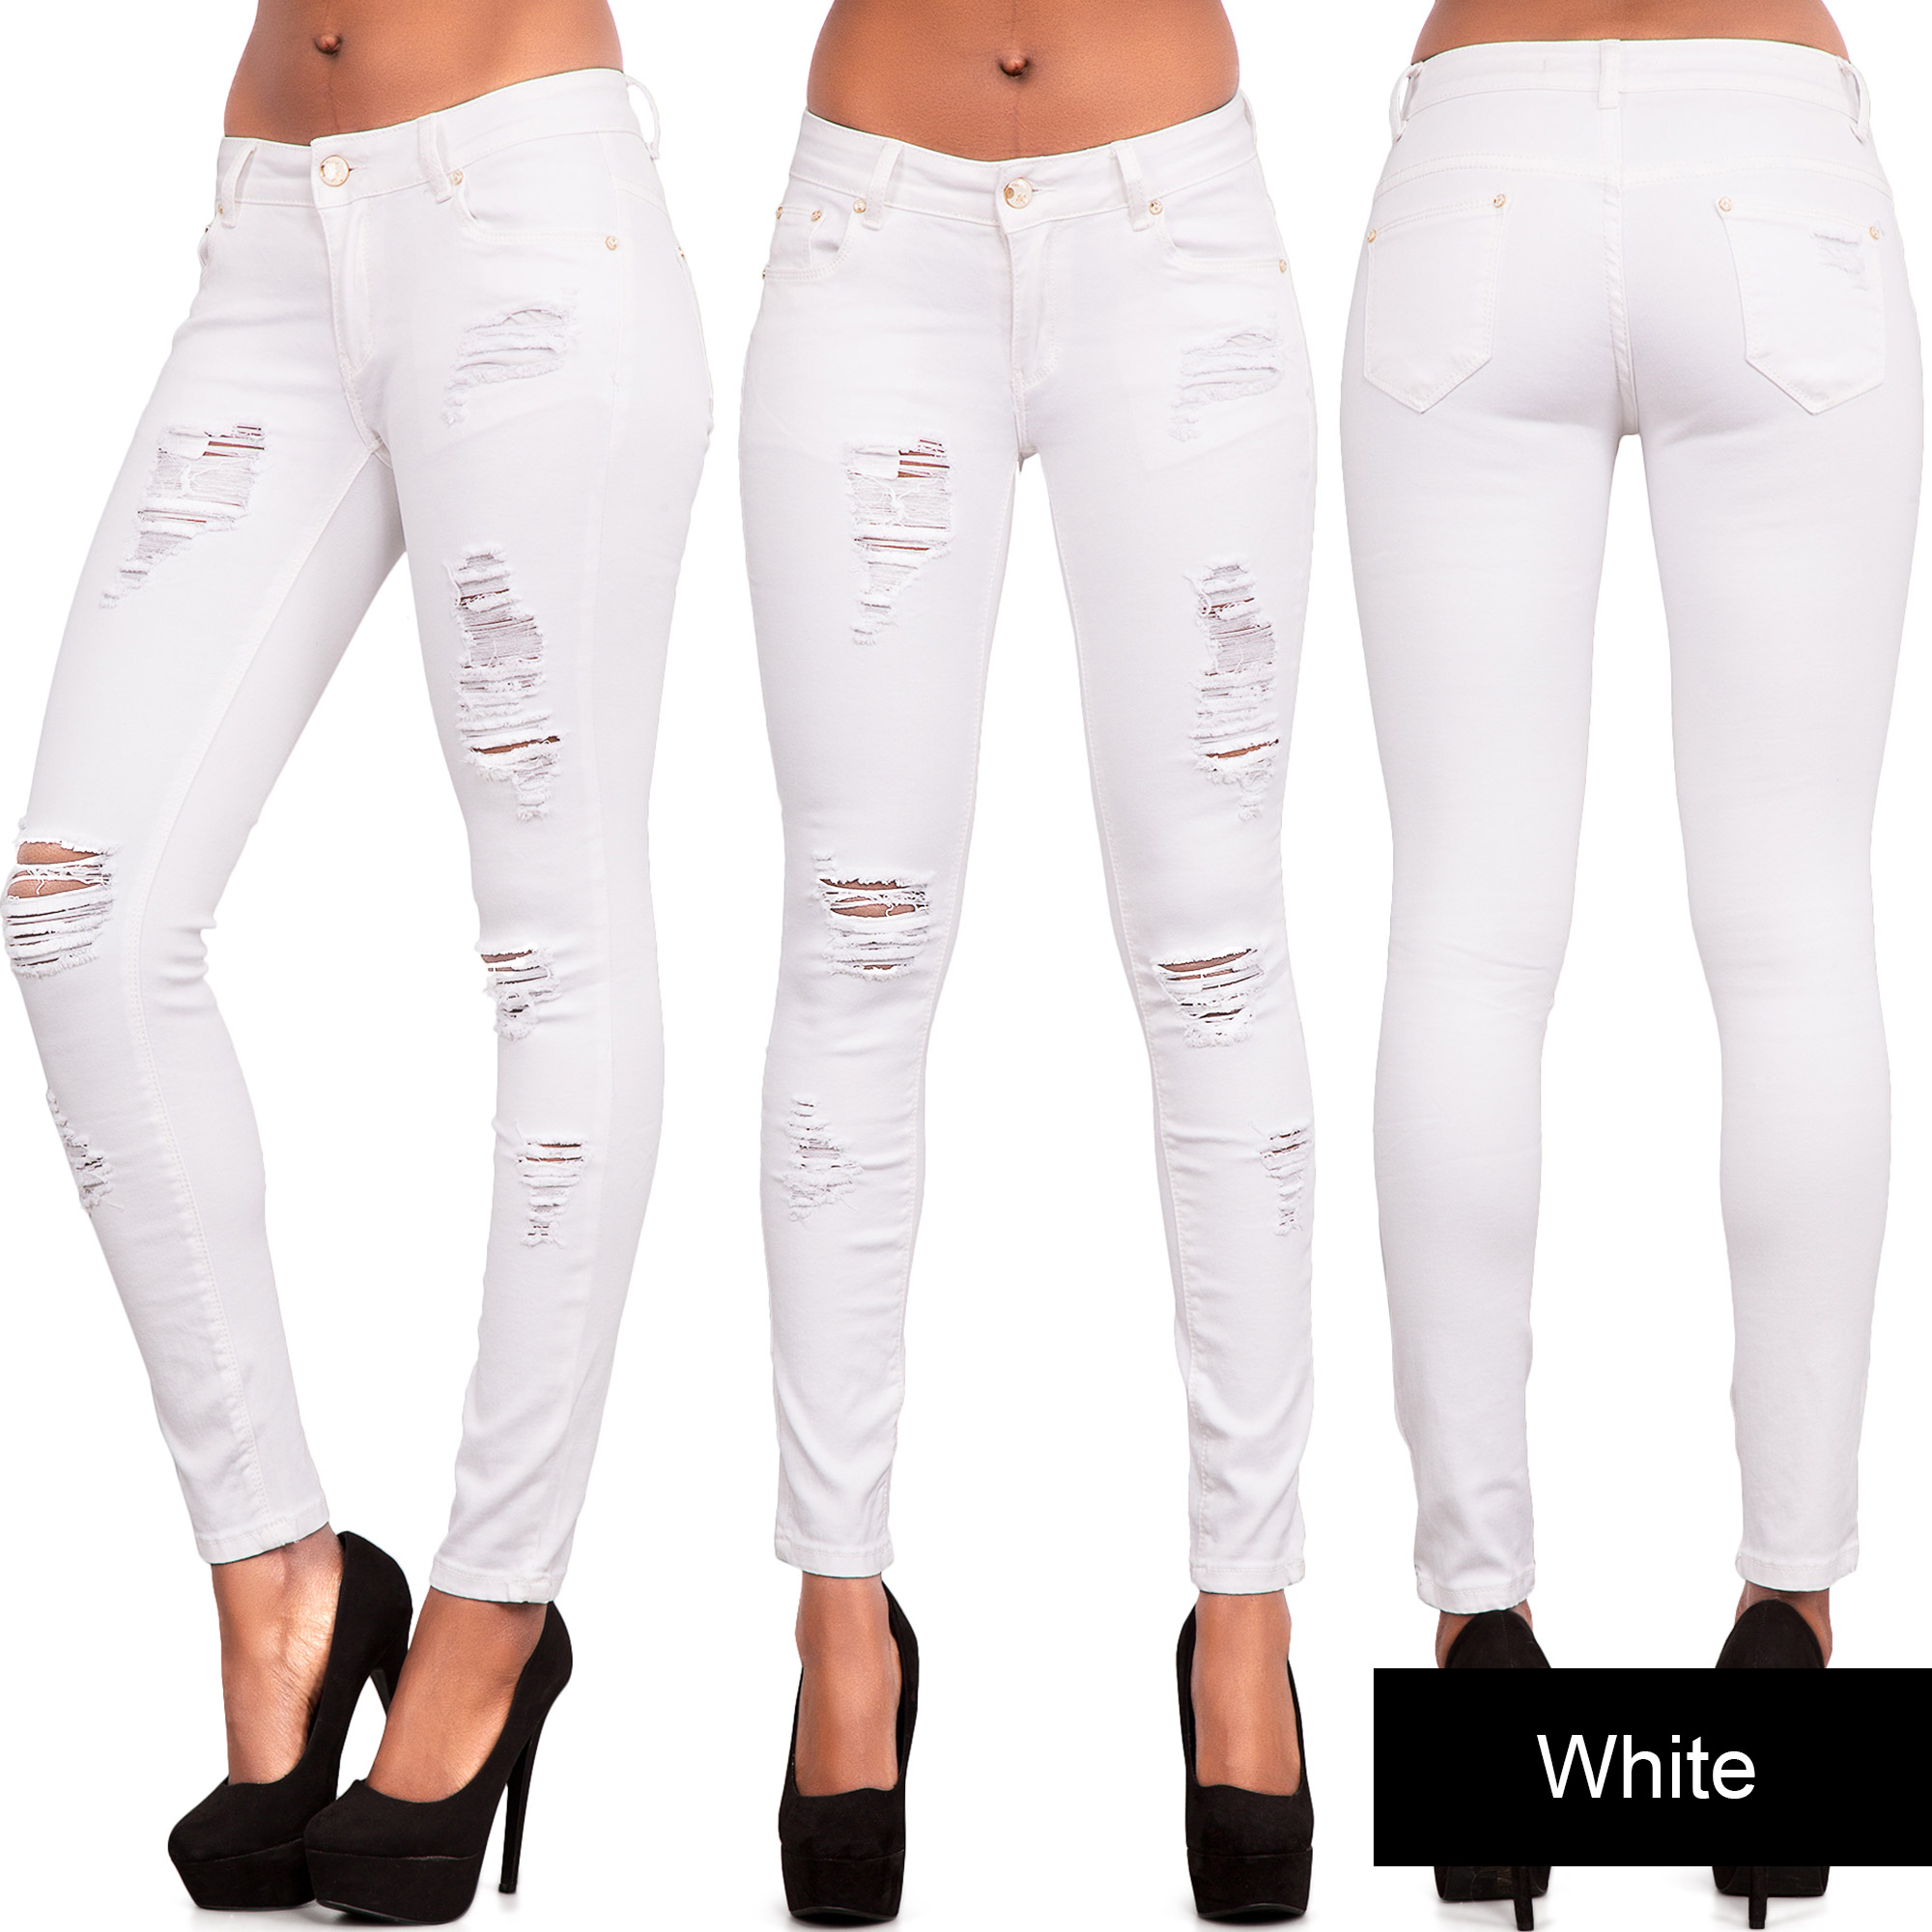 Find white jeans size 8 at ShopStyle. Shop the latest collection of white jeans size 8 from the most popular stores - all in one place.